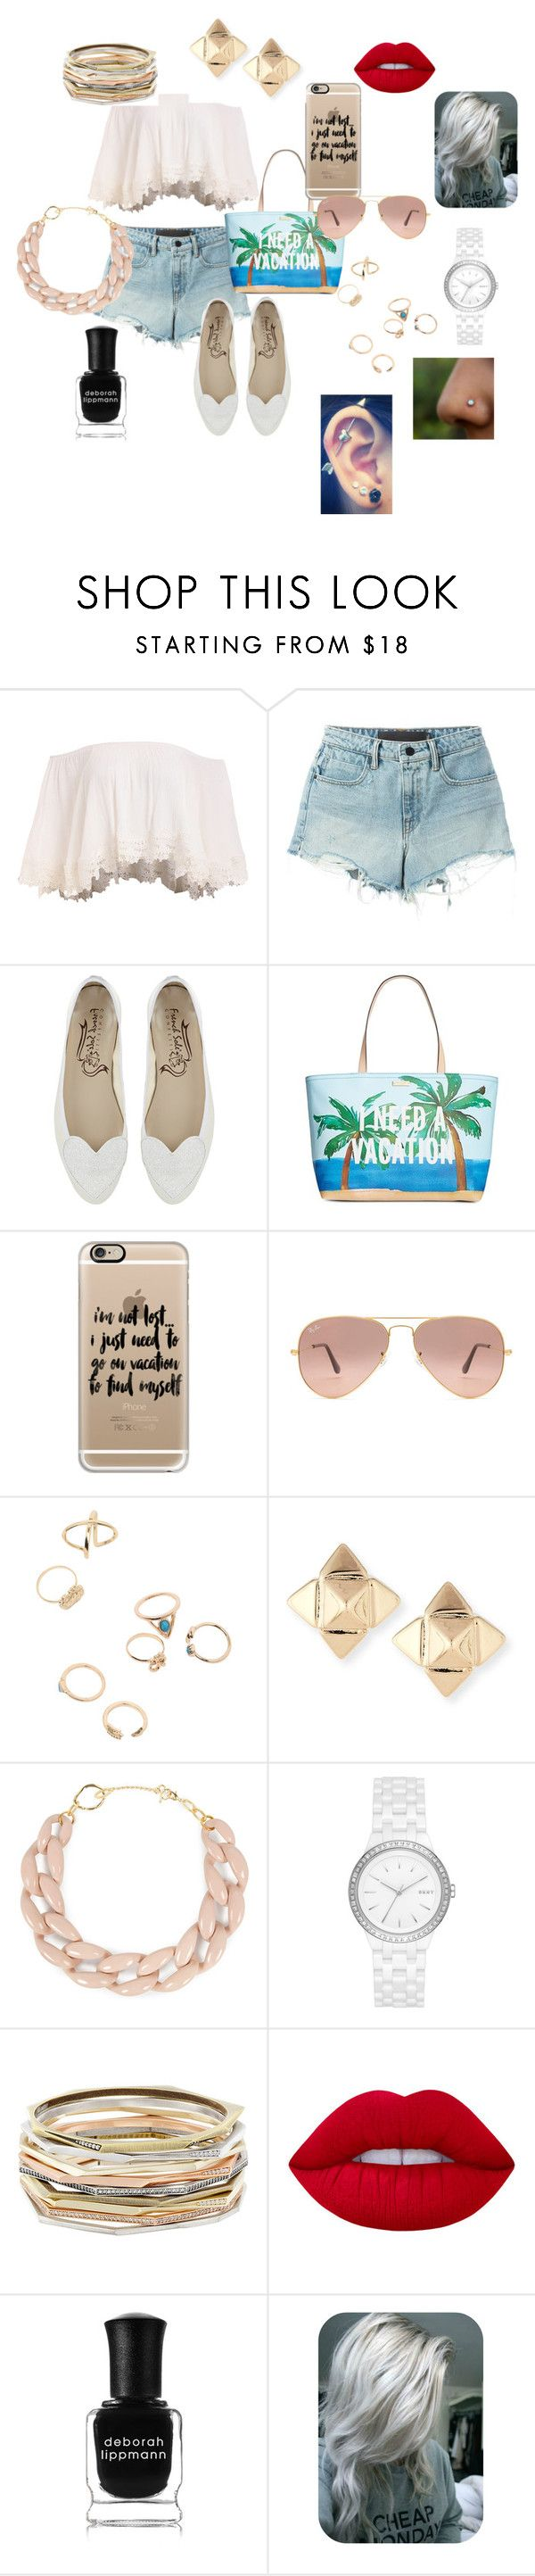 """""""Valeria!"""" by manuelahs on Polyvore featuring moda, T By Alexander Wang, Kate Spade, Casetify, Ray-Ban, Valentino, DIANA BROUSSARD, DKNY, Kendra Scott y Lime Crime"""